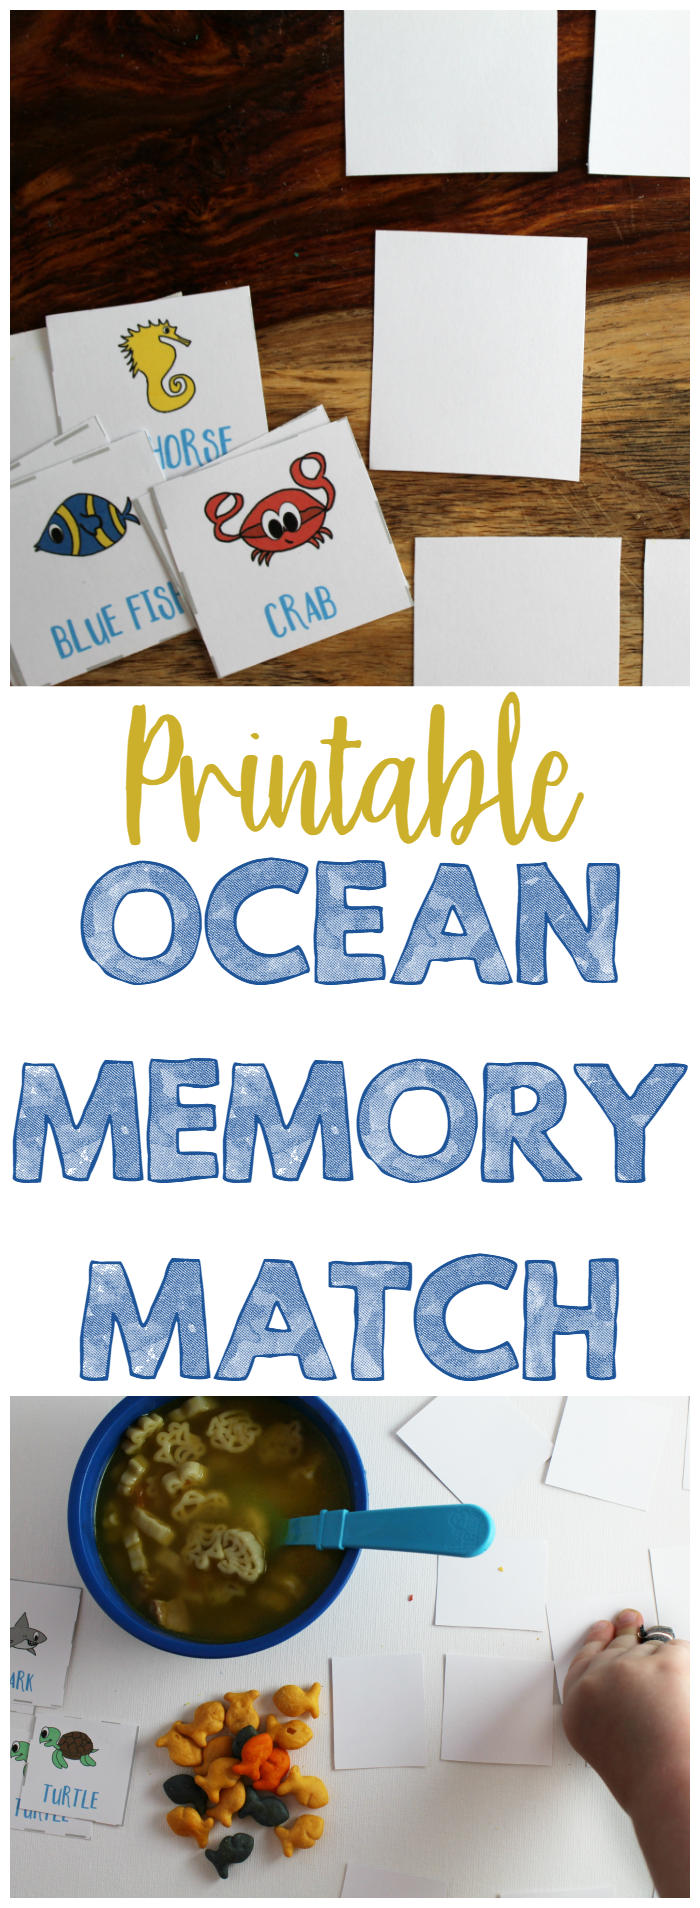 Printable Ocean Memory Match Game - Print out this fun memory match game with an ocean theme. Cards include words, too! Perfect for Finding Dory fans!